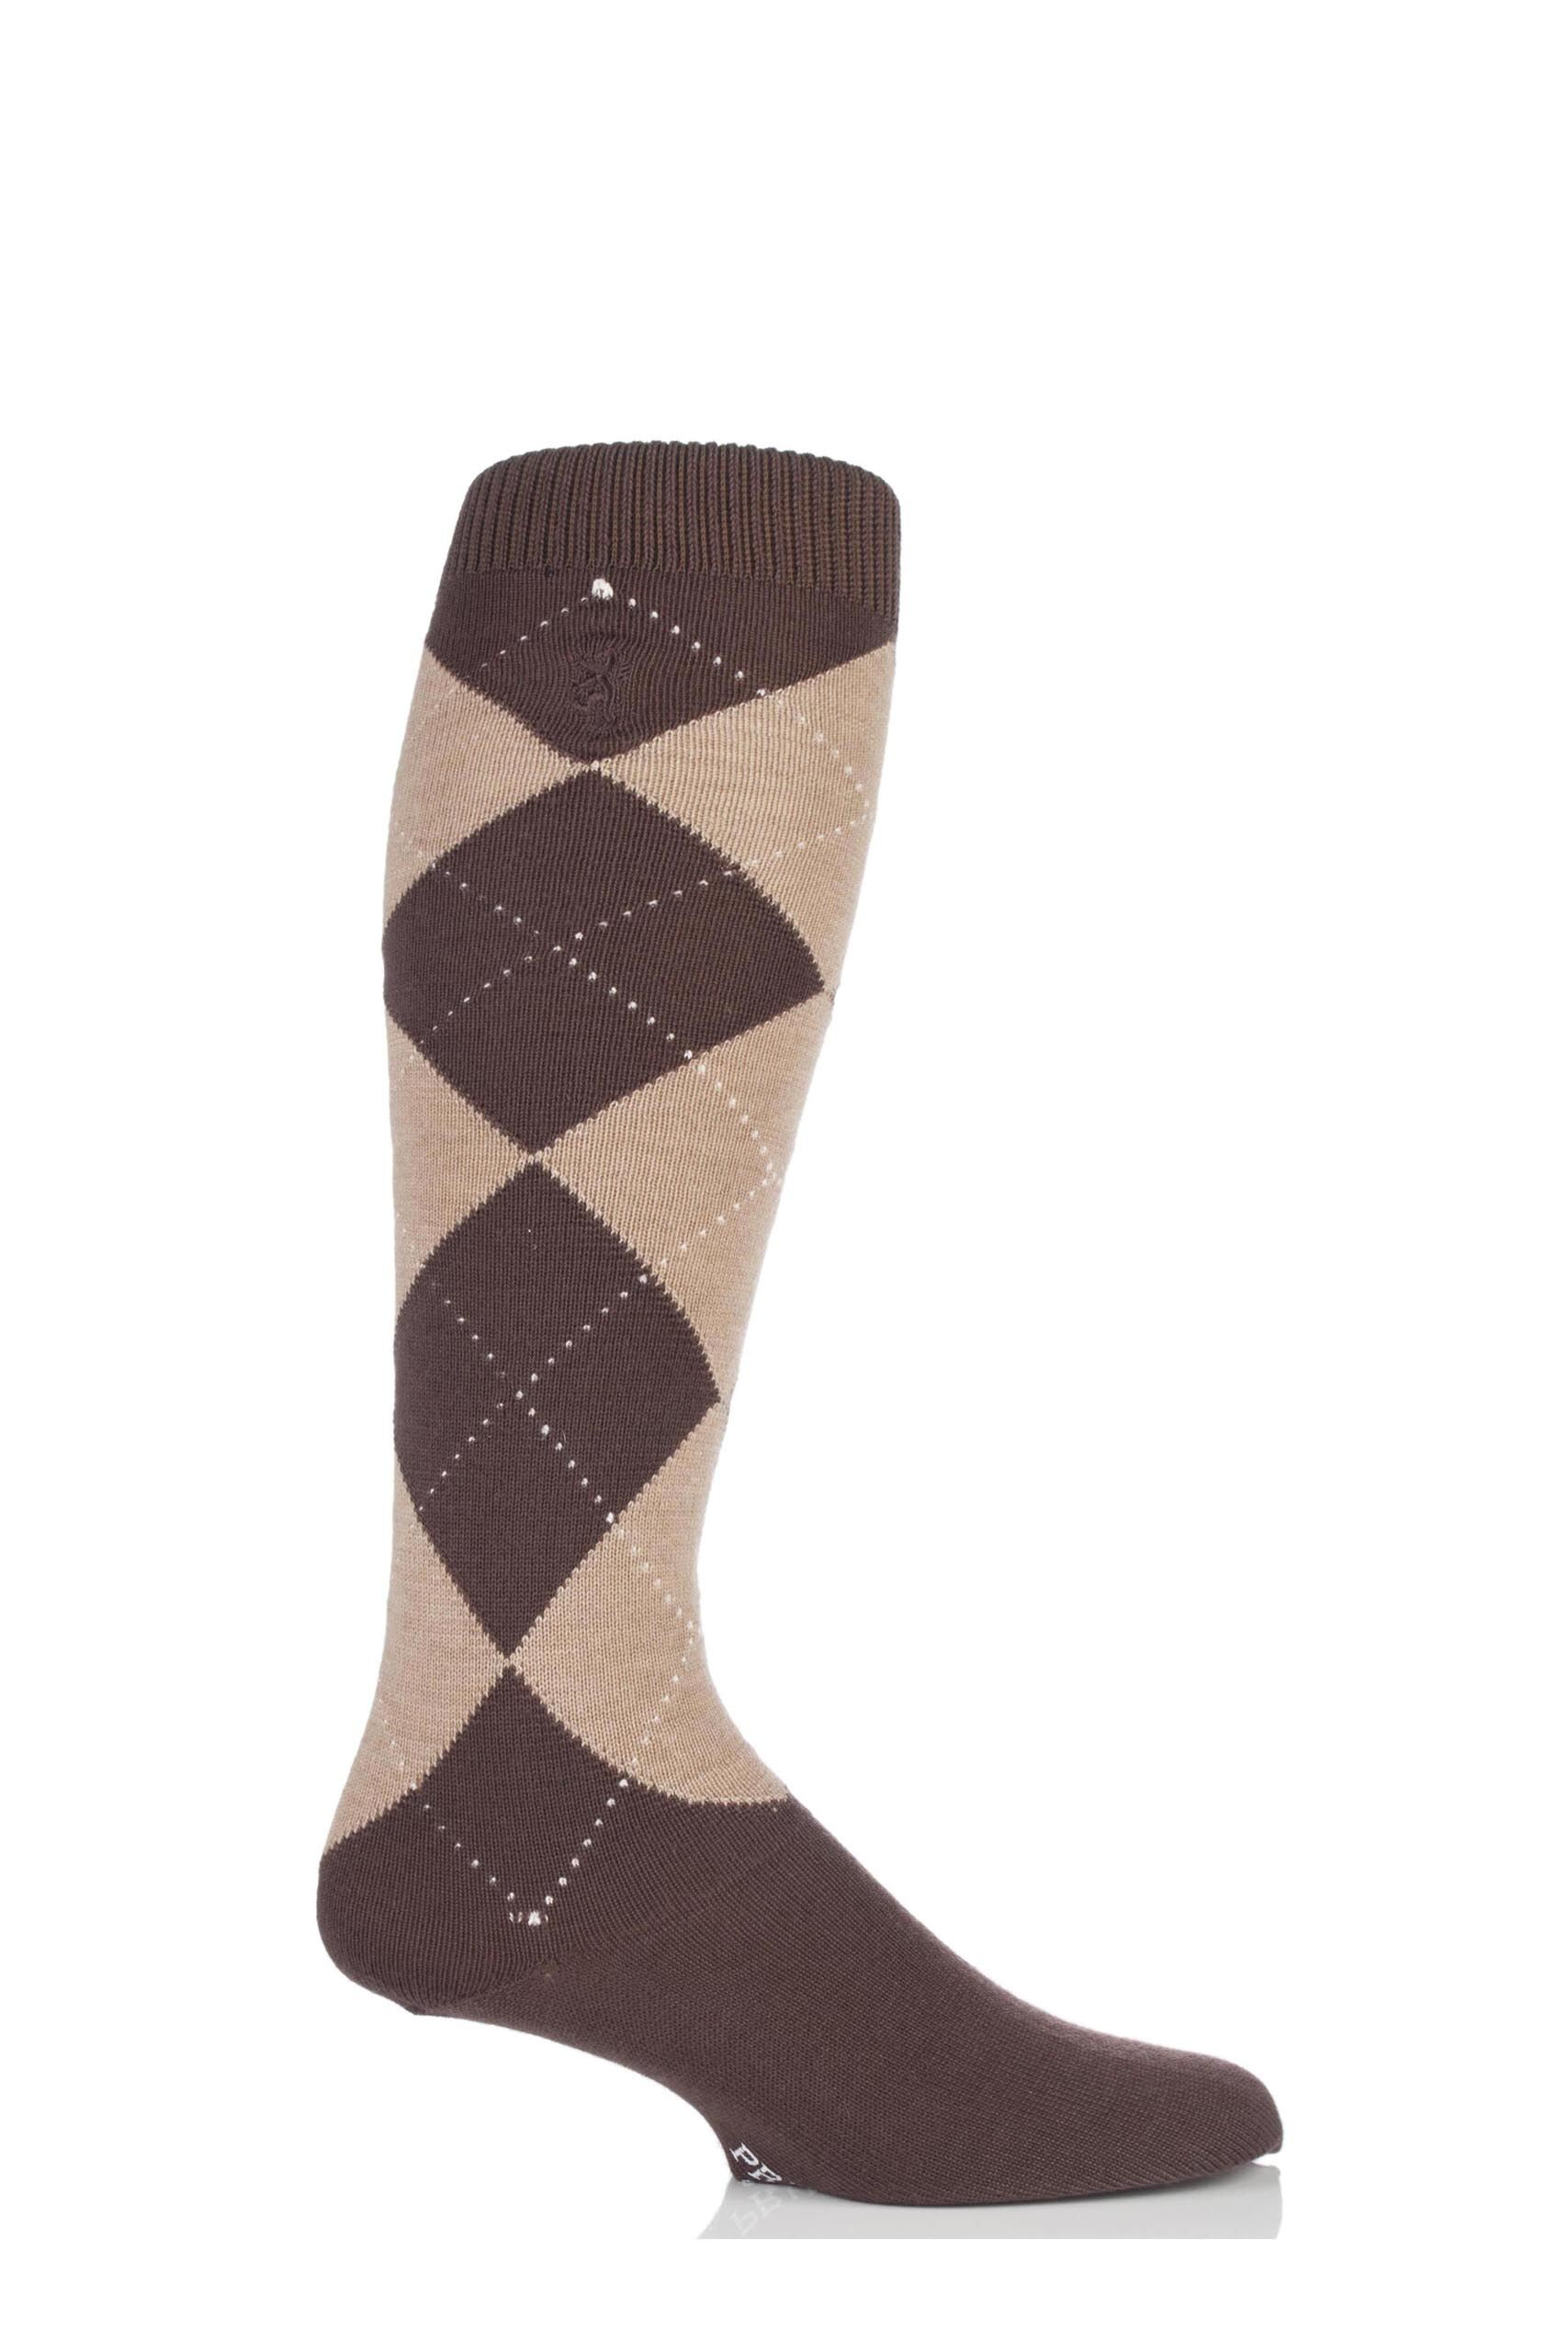 Image of 1 Pair Brown 80% Cashmere Argyle Pattern Knee High Socks Men's 7-11 Mens - Pringle of Scotland